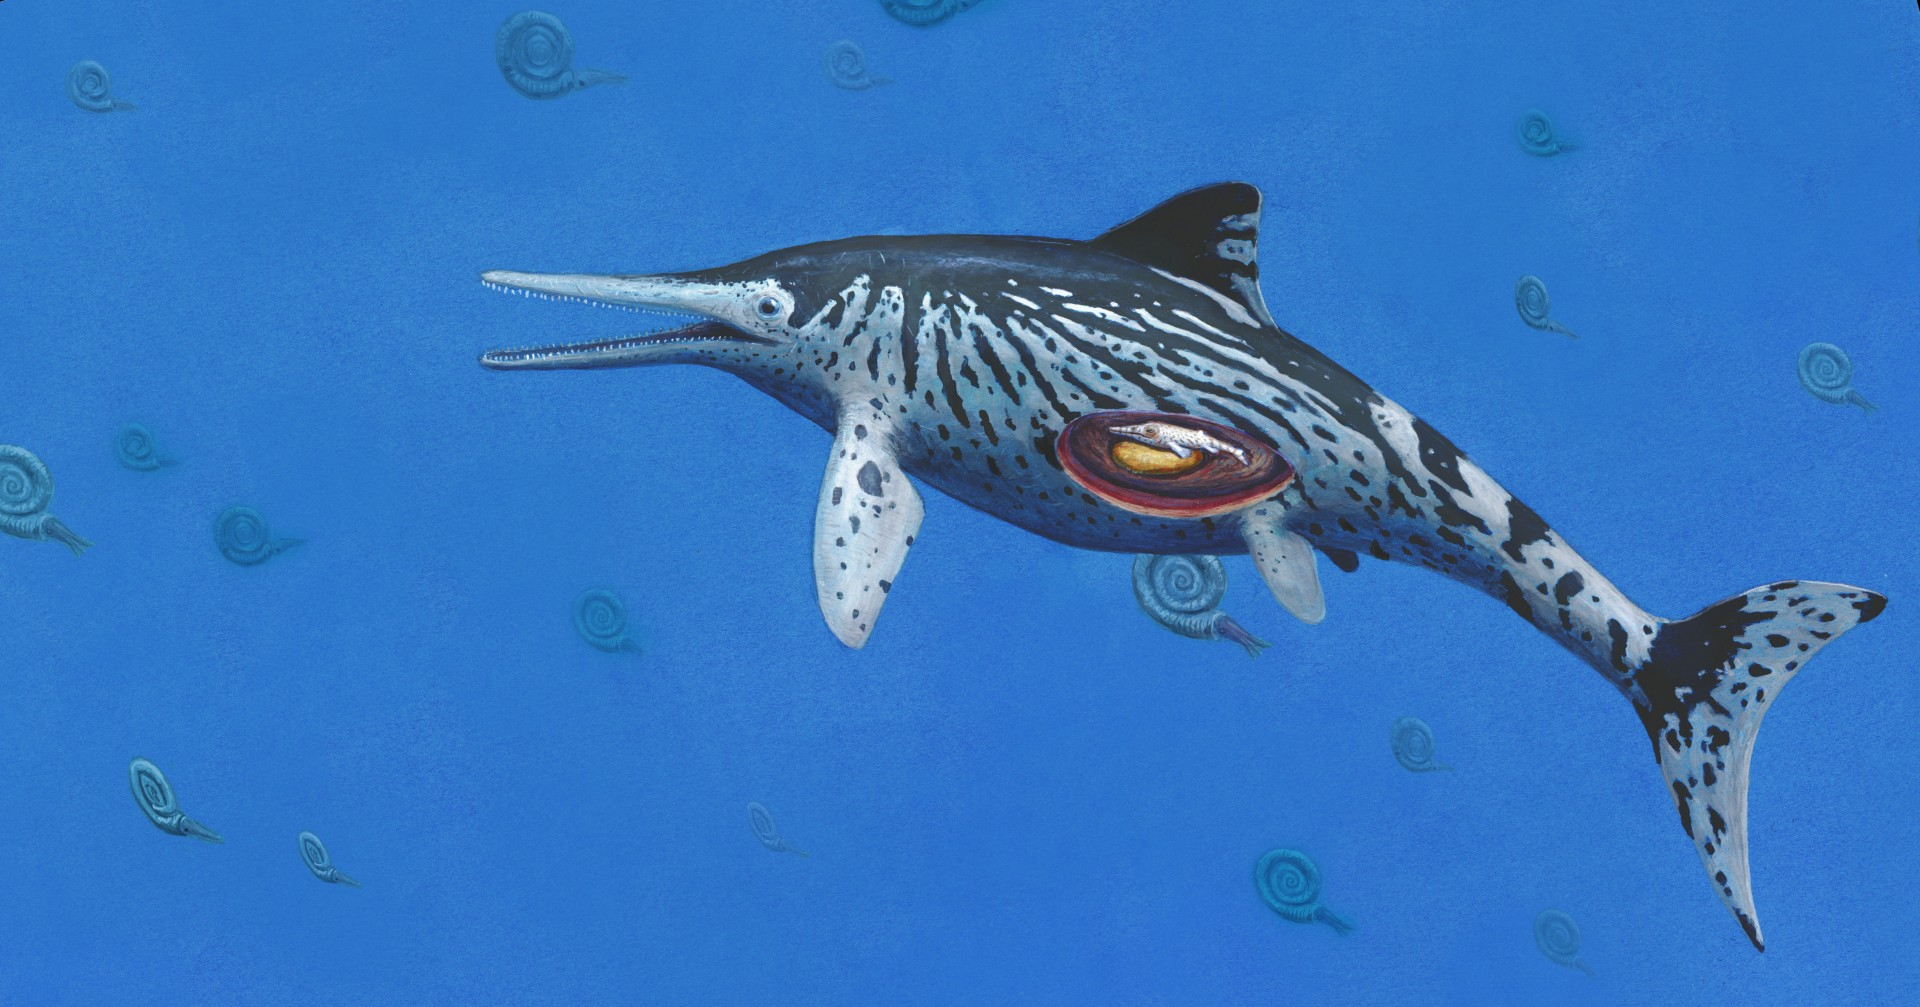 'Sea dragon' fossil is 'largest on record'